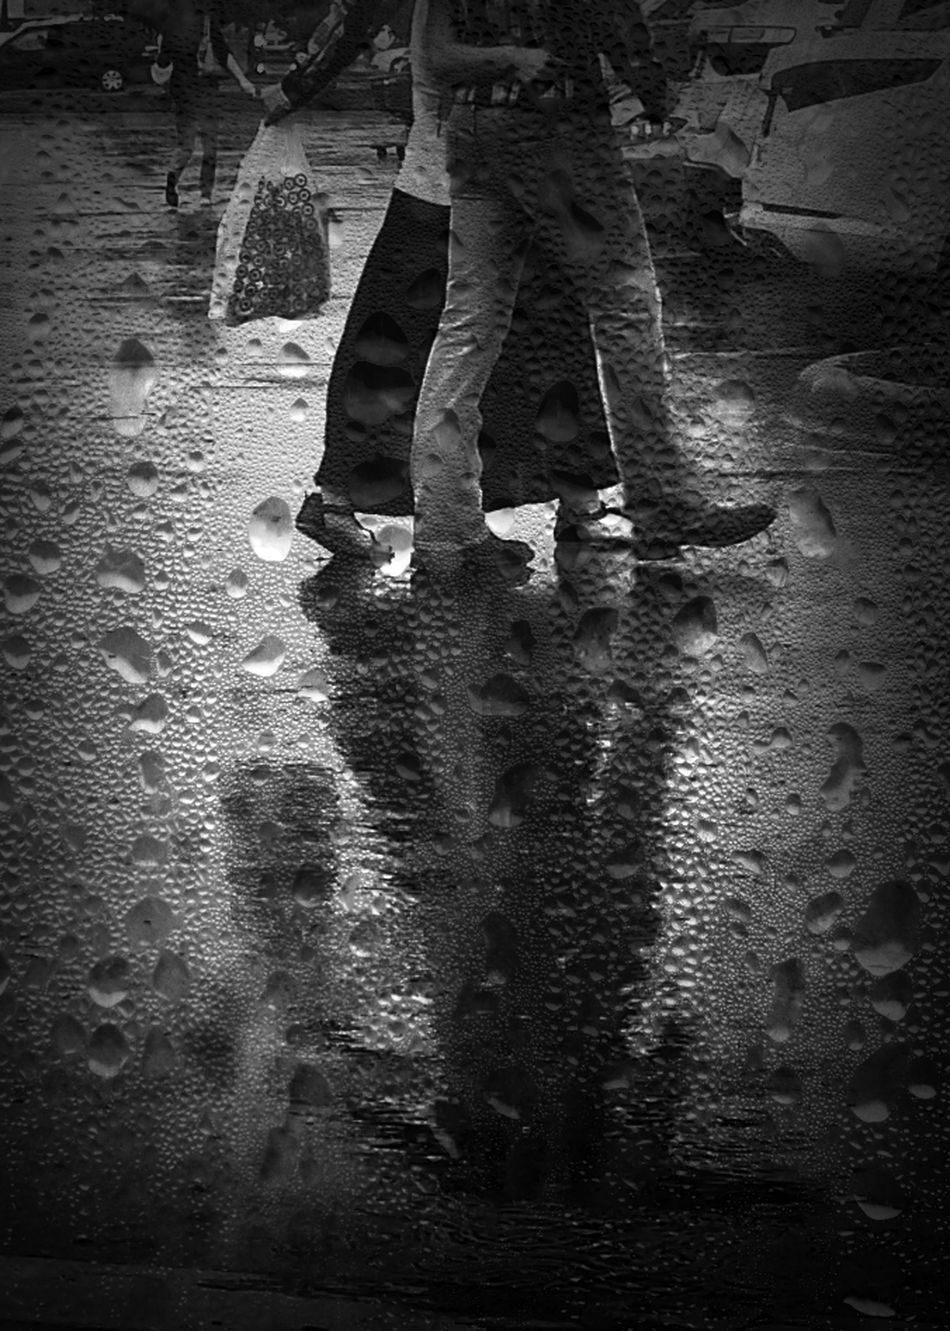 Rain lovers Shootermag_usa EyeEm Best Shots - Black + White The Street Photographer - 2014 EyeEm Awards The Storyteller - 2014 Eyeem Awards